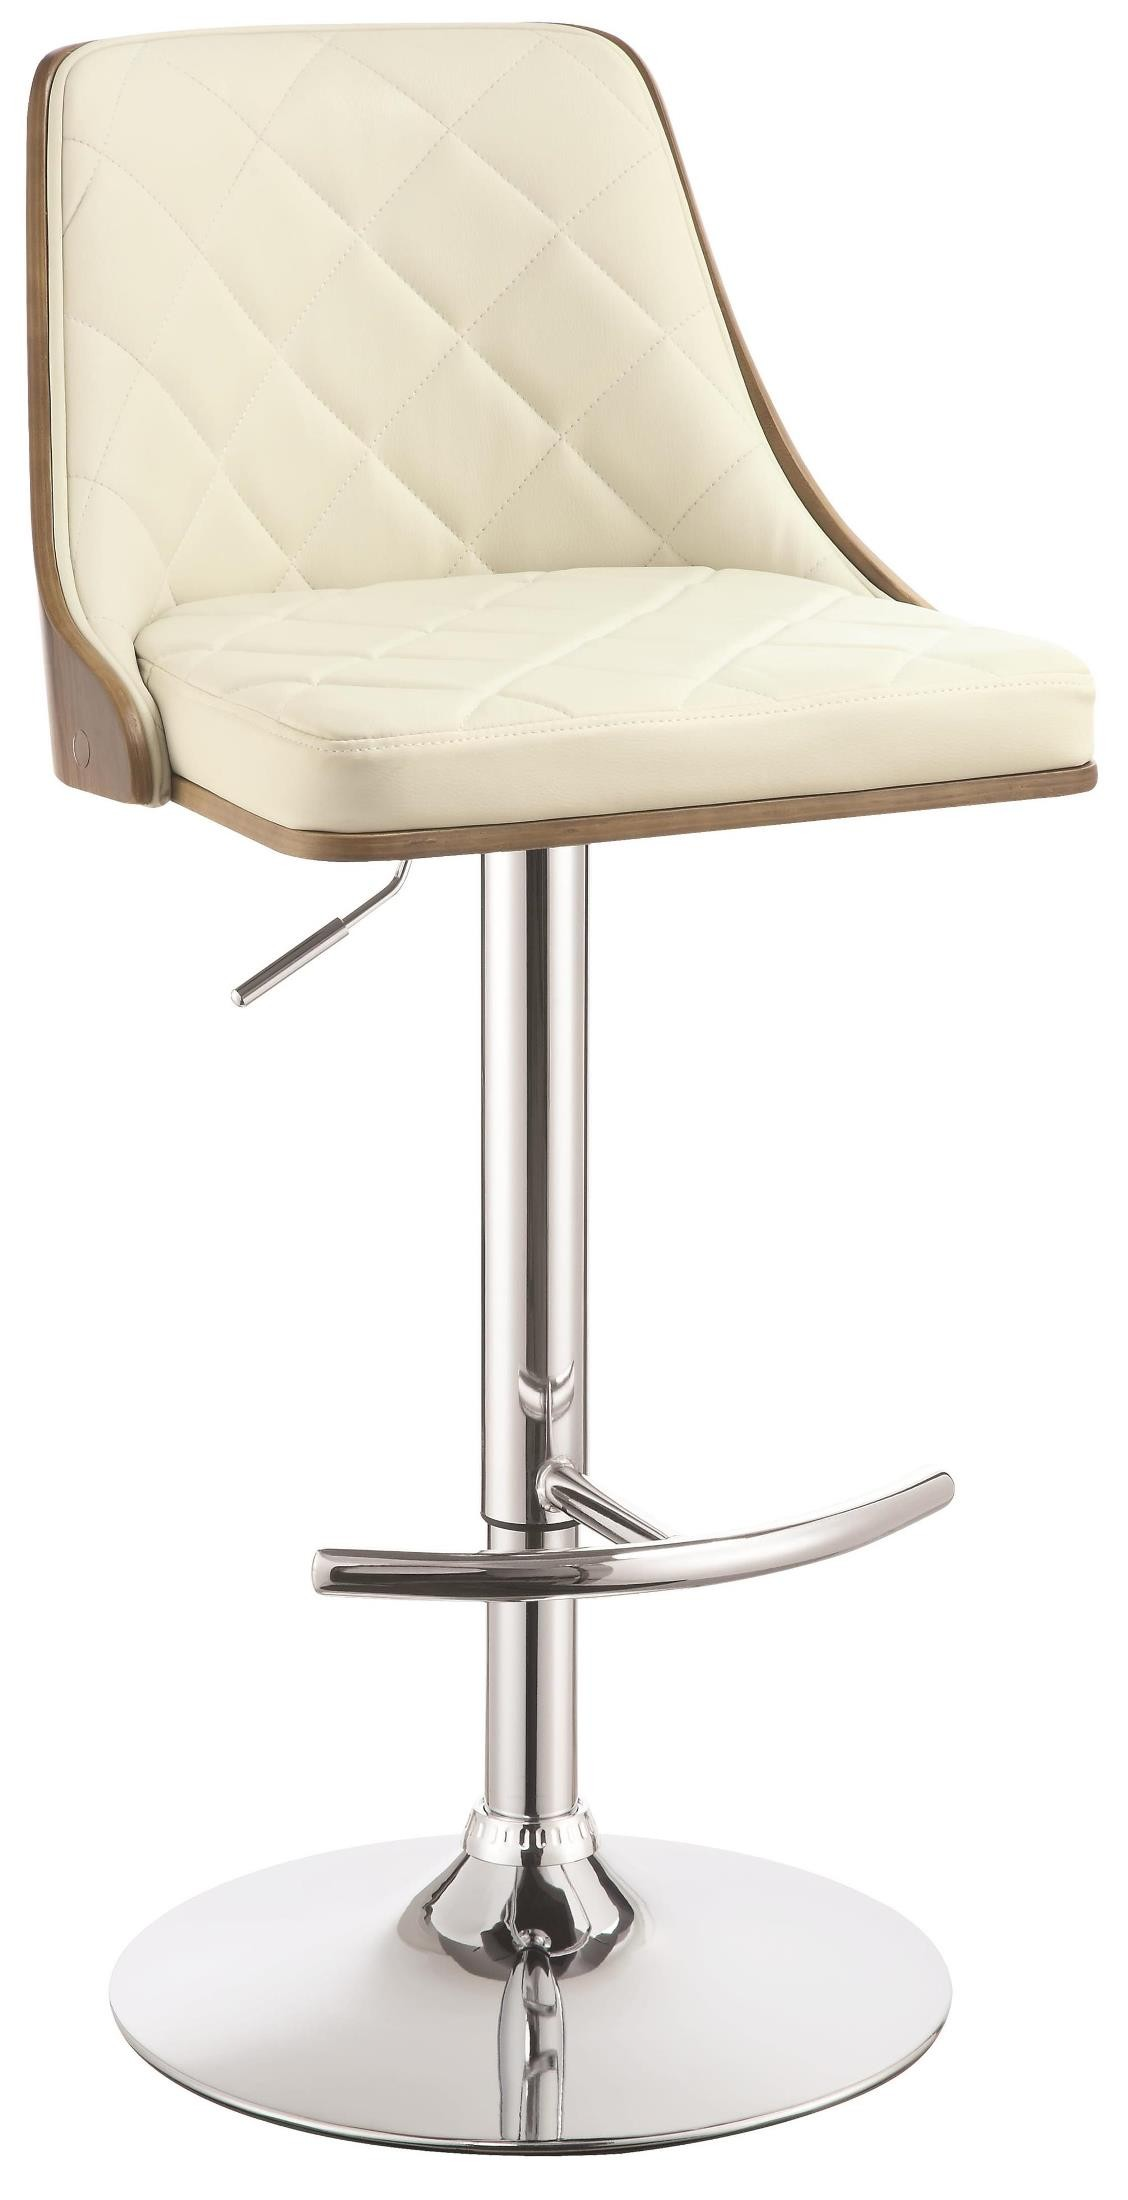 Ecru Upholstered Adjustable Bar Stool From Coaster (100411) Coleman . Full resolution  image, nominally Width 1128 Height 2200 pixels, image with #857546.